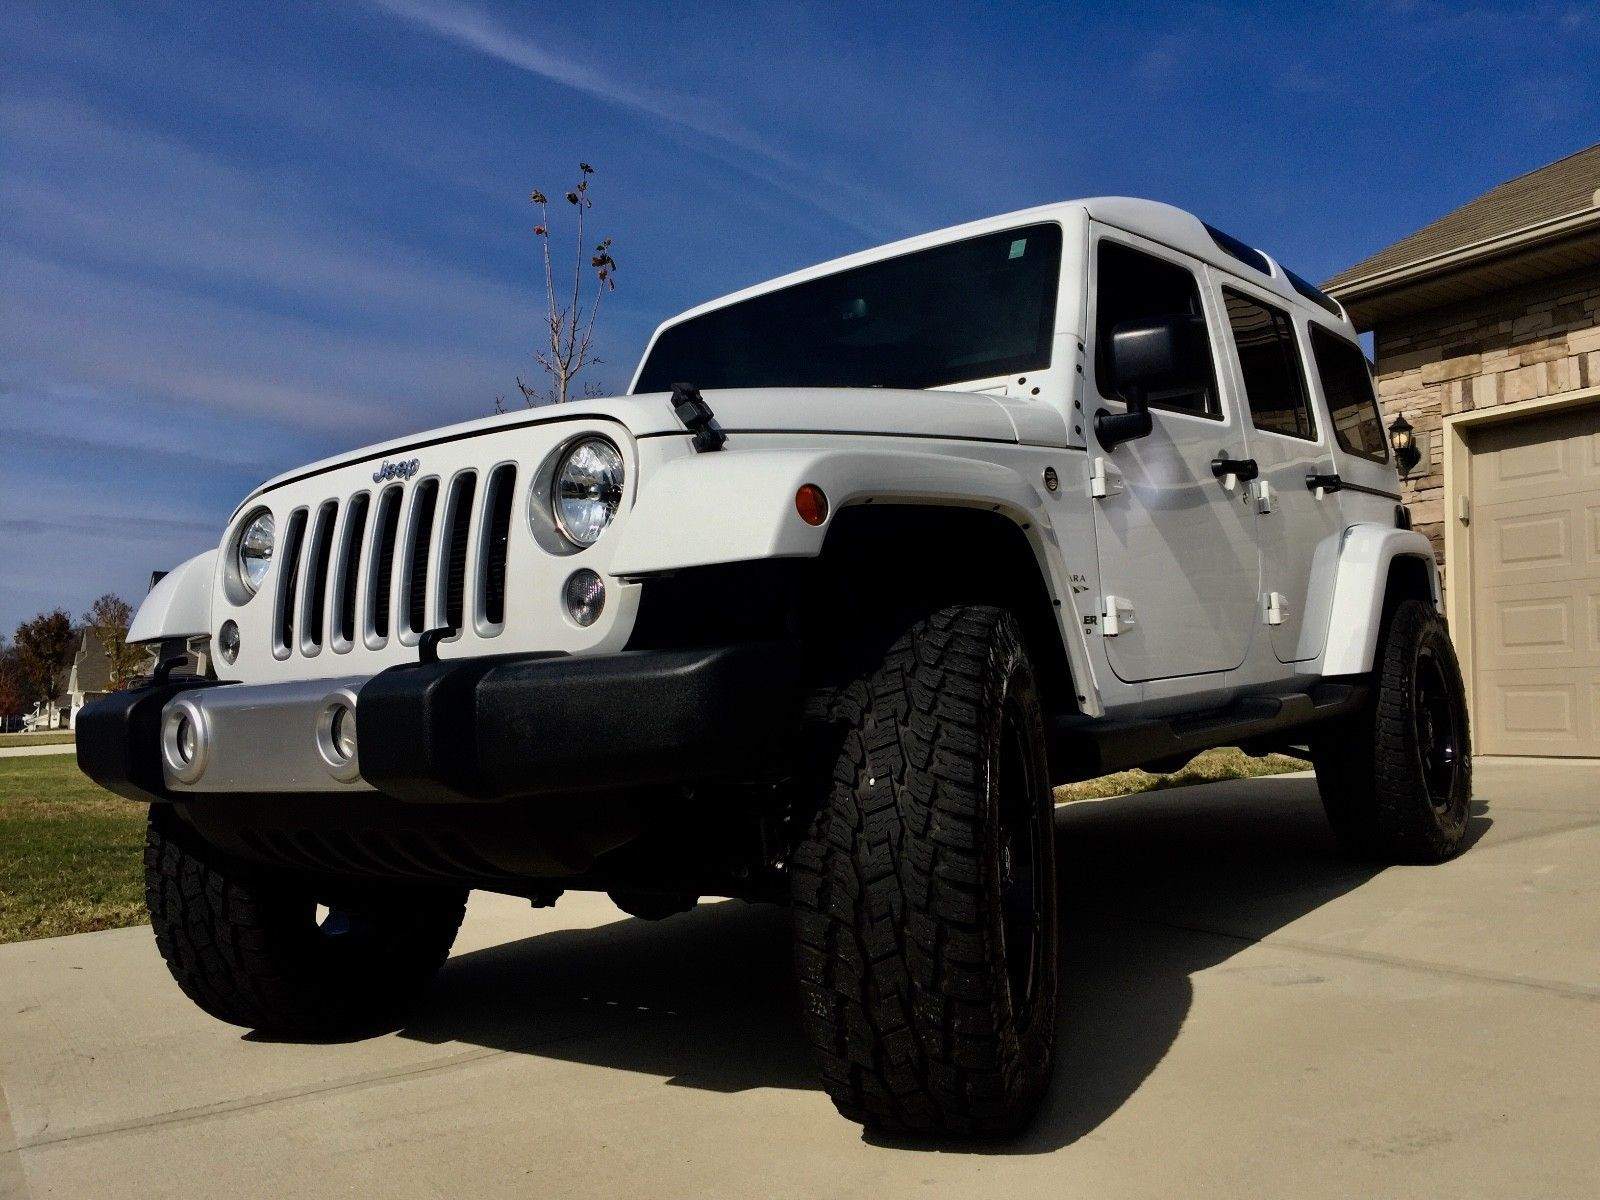 2016 Jeep Wrangler Unlimited Sahara 2016 Jeep Wrangler Unlimited Sahara 2017 2018 Is In Stock And For Sale 24carshop Com Jeep Wrangler Unlimited White Jeep Wrangler Unlimited Jeep Wrangler Unlimited Sahara